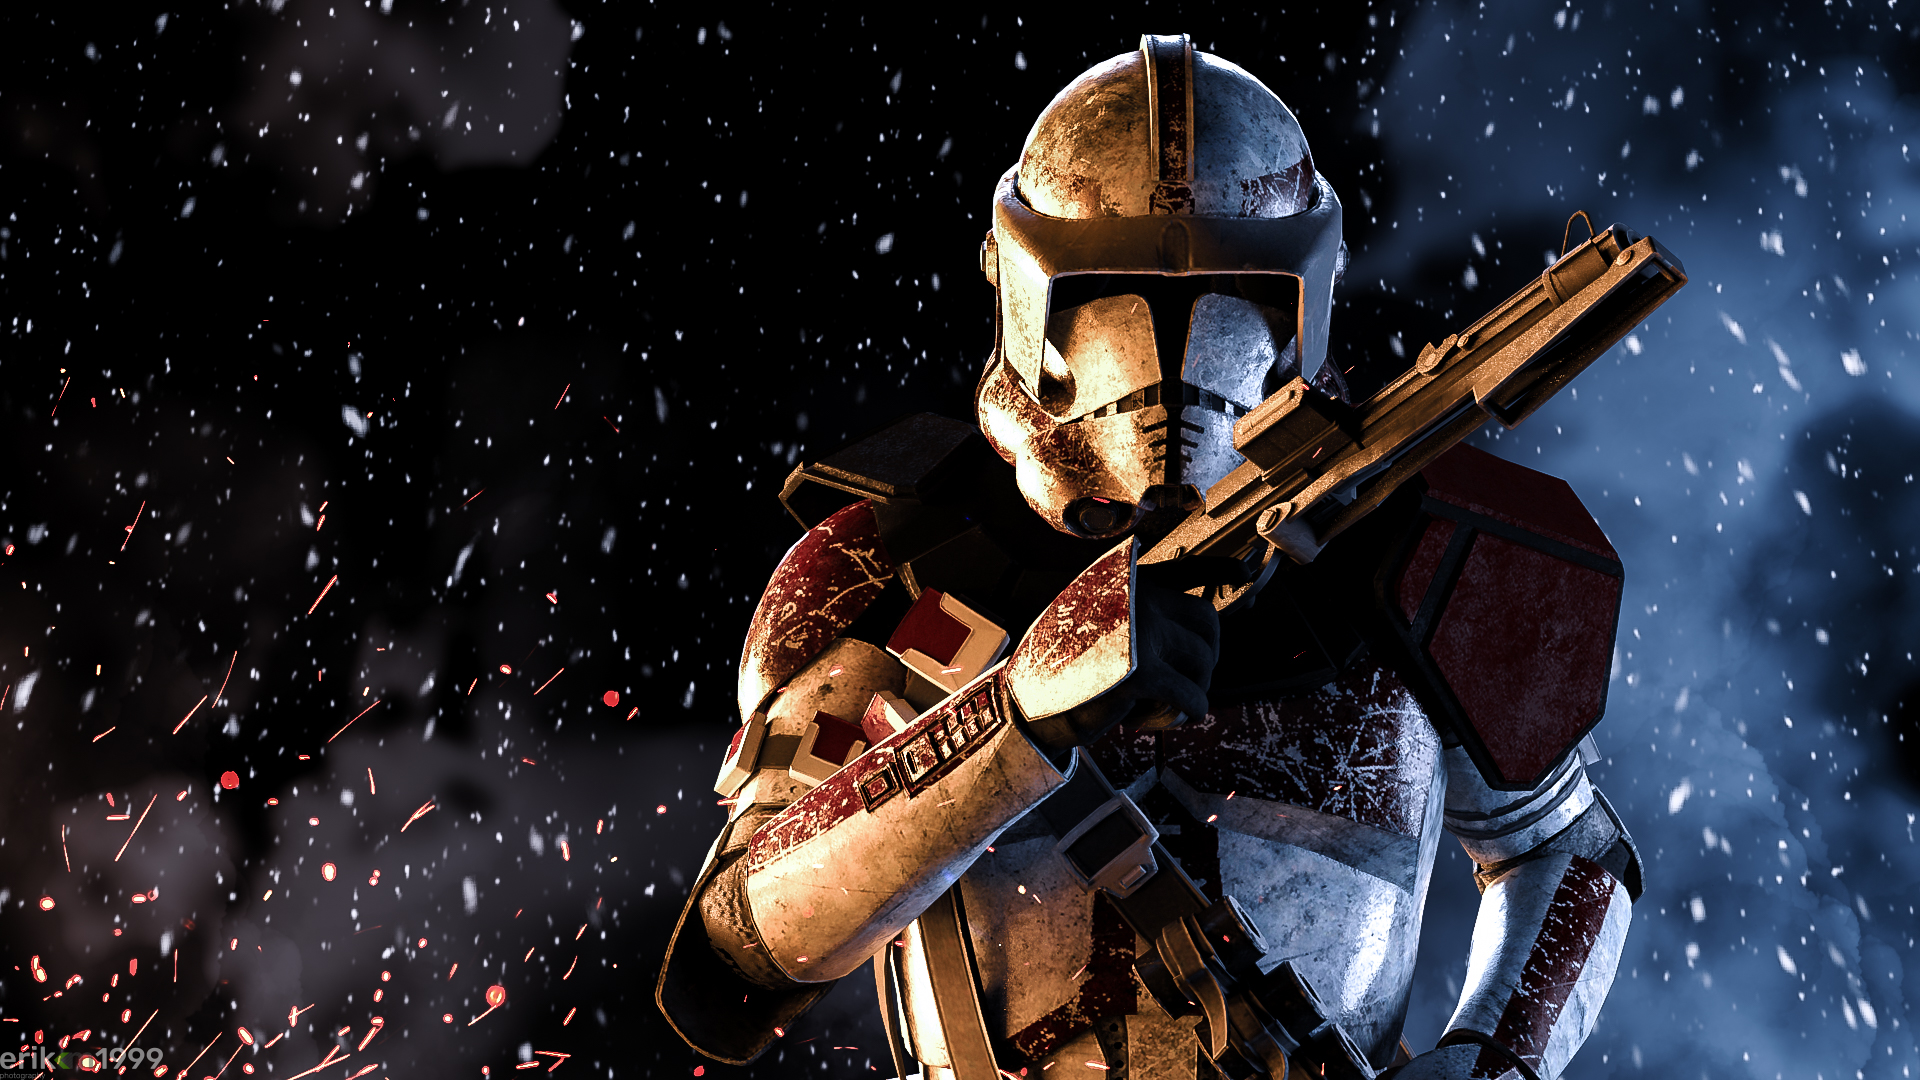 Star Wars The Clone Wars Wallpaper: 1920x1080 Clone Trooper Star Wars HD Laptop Full HD 1080P